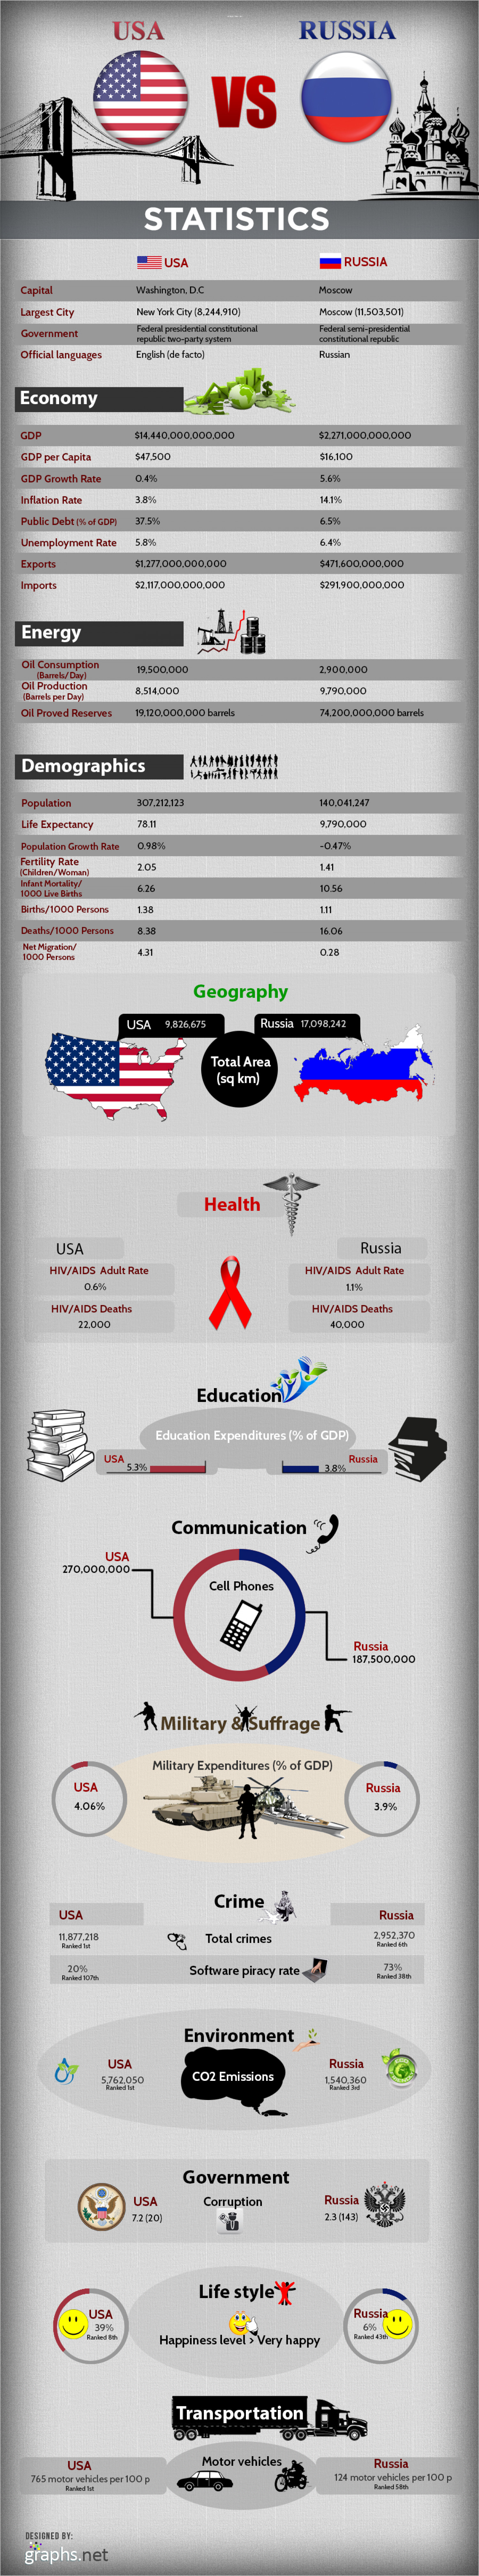 Statistics of USA Vs Russia Infographic